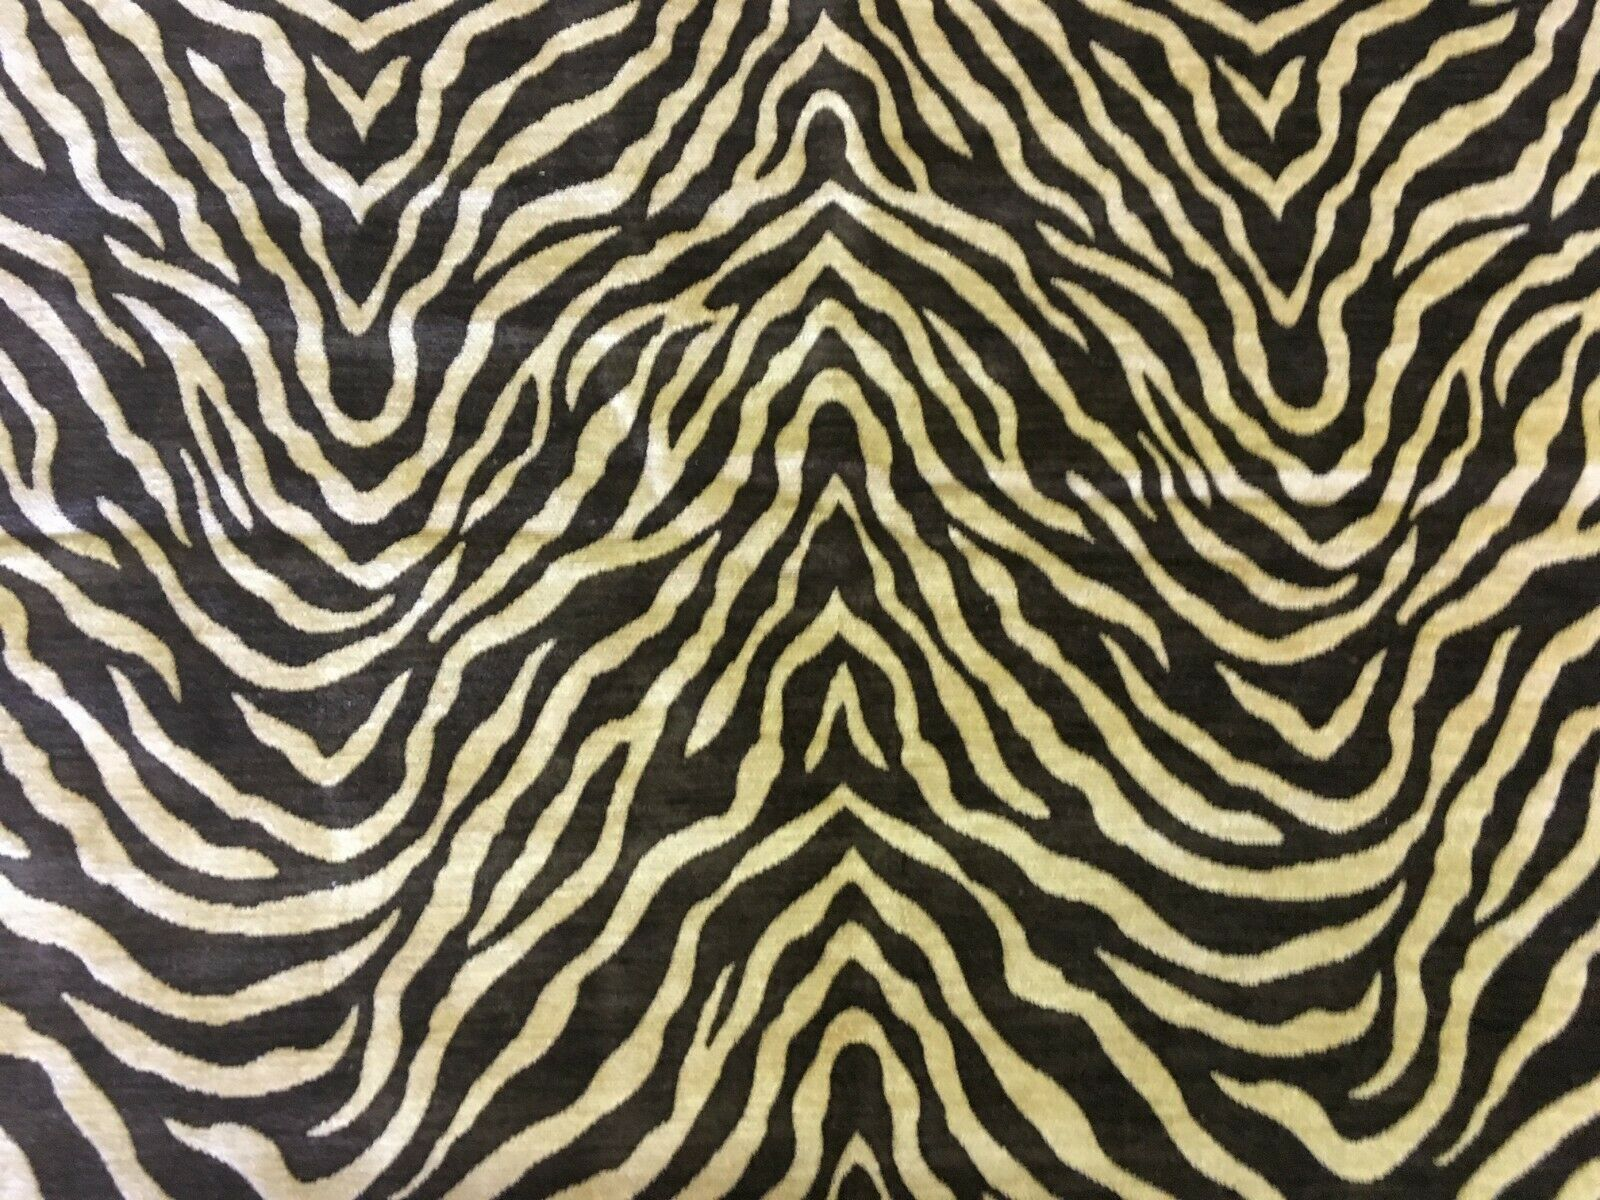 Reversible Tiger Print Chenille Upholstery Fabric 1.5 yards NS